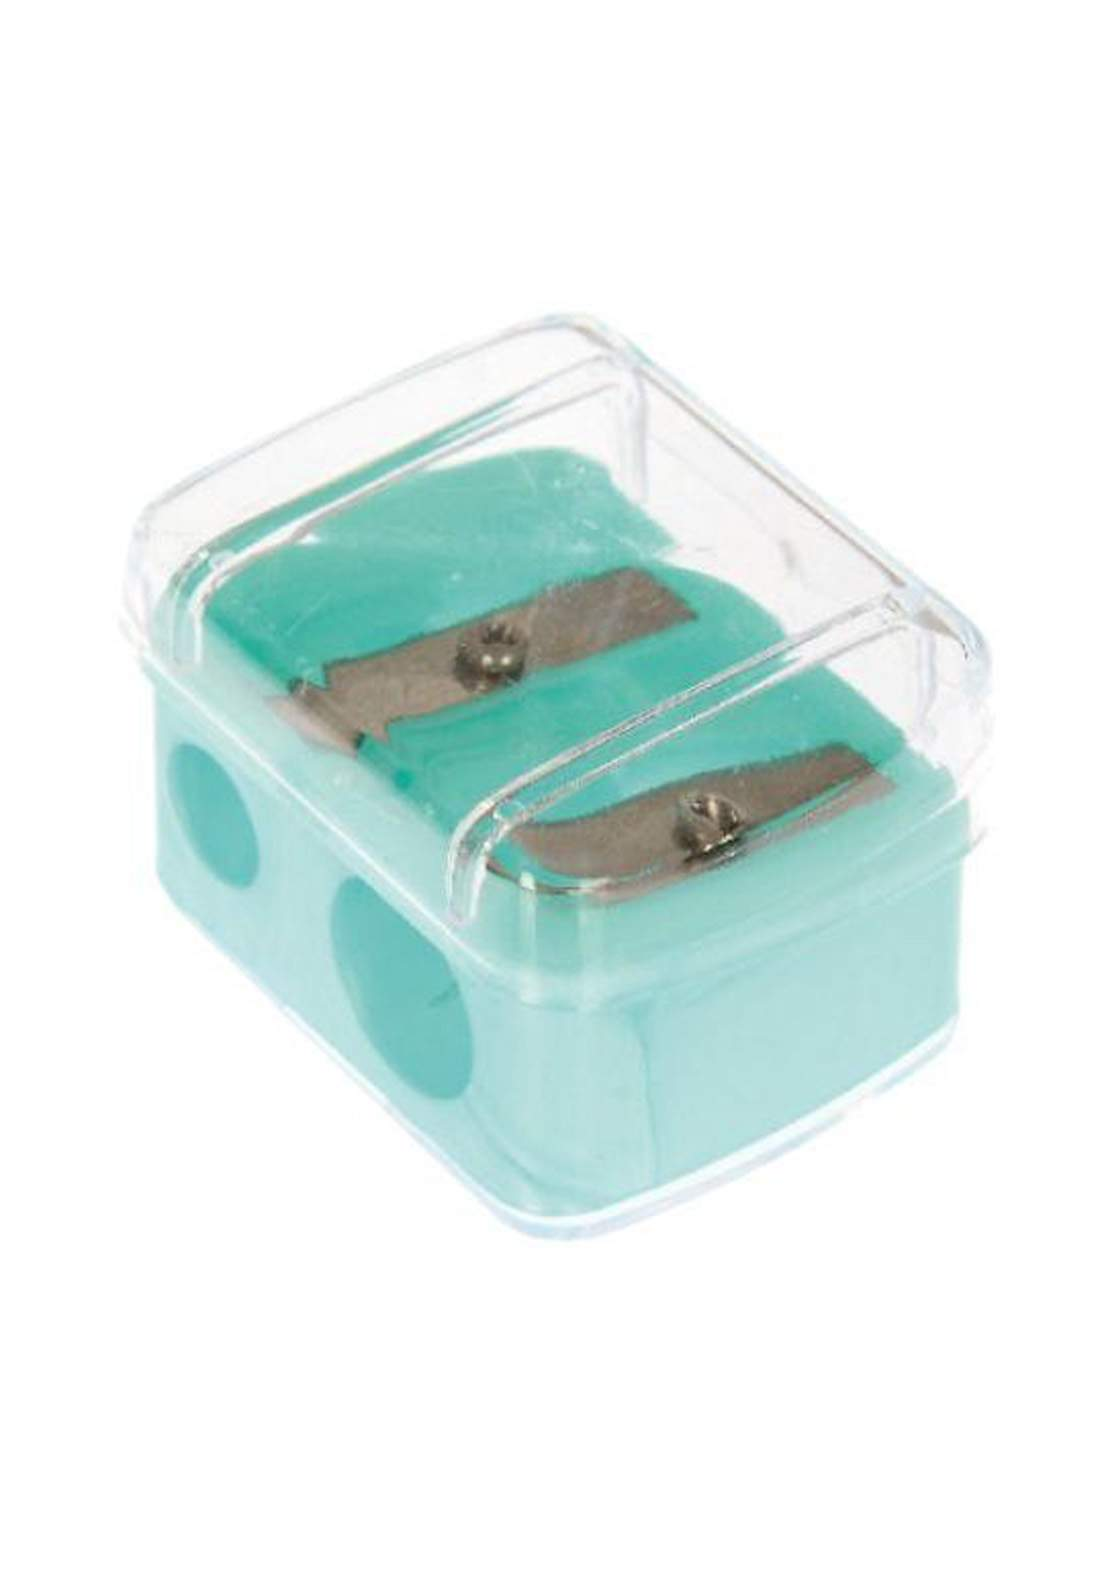 Gold Beauty 1537 Double-Sided Sharpener  مبراة